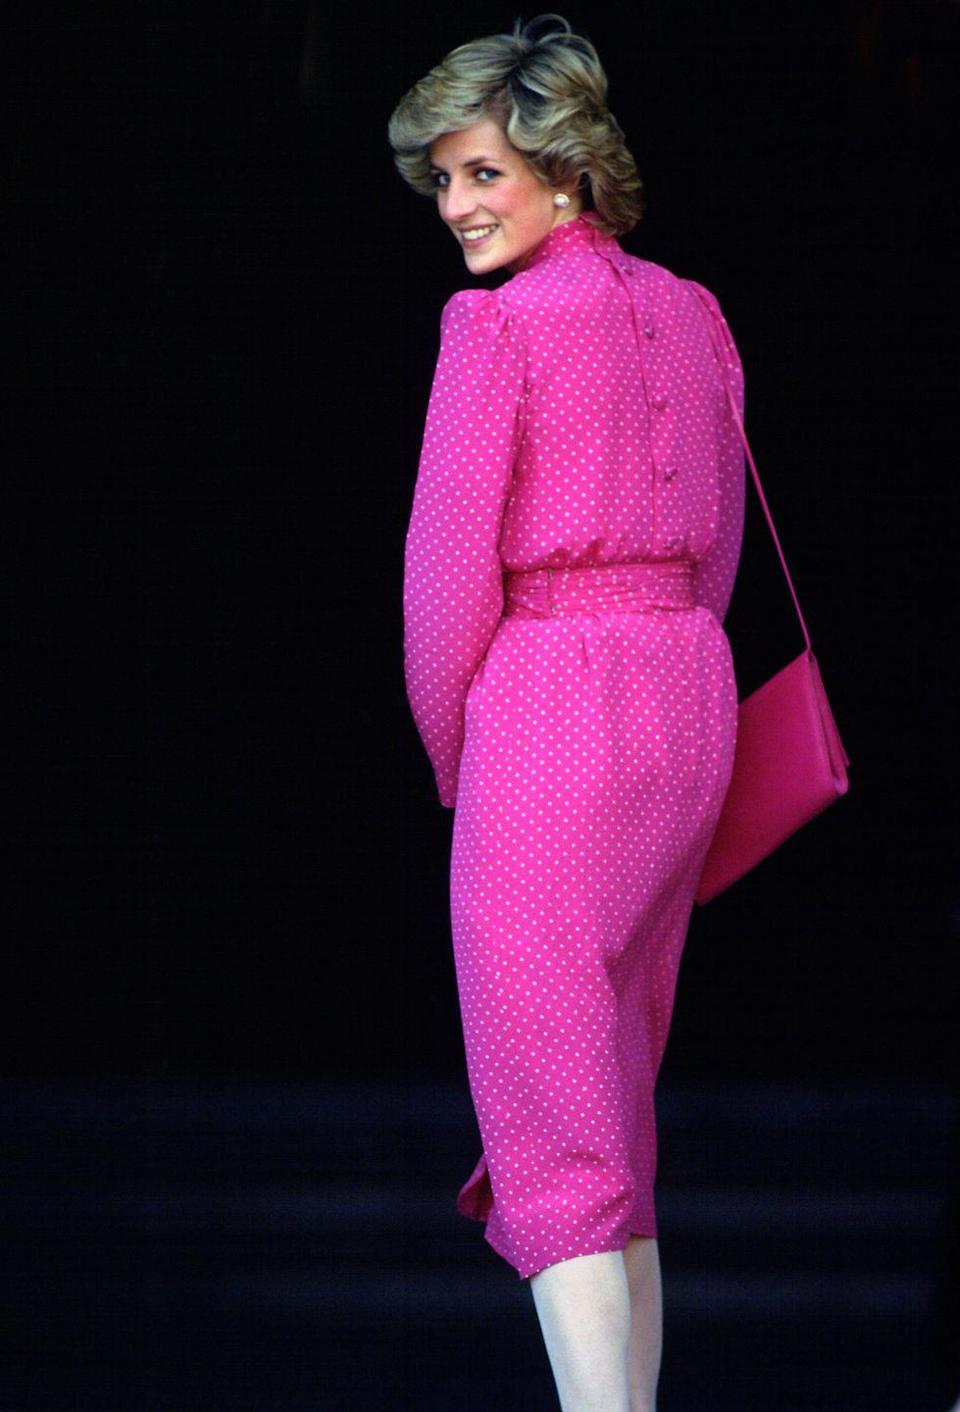 <p>Princess Diana looked <em>bella</em> in bold pink during her 1985 trip to Rome.</p>